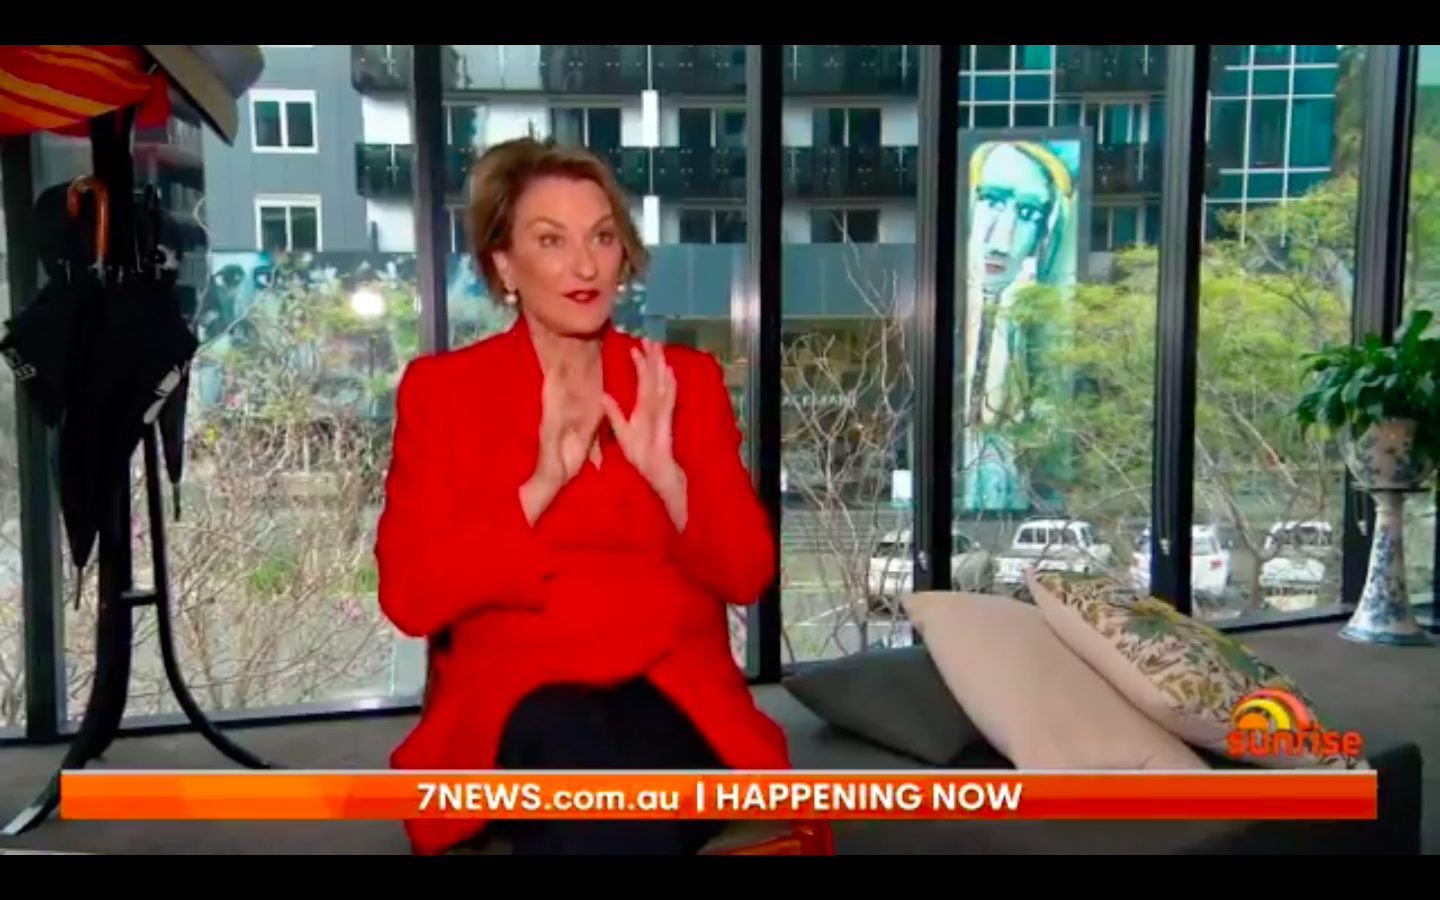 Louise Mahler on Sunrise